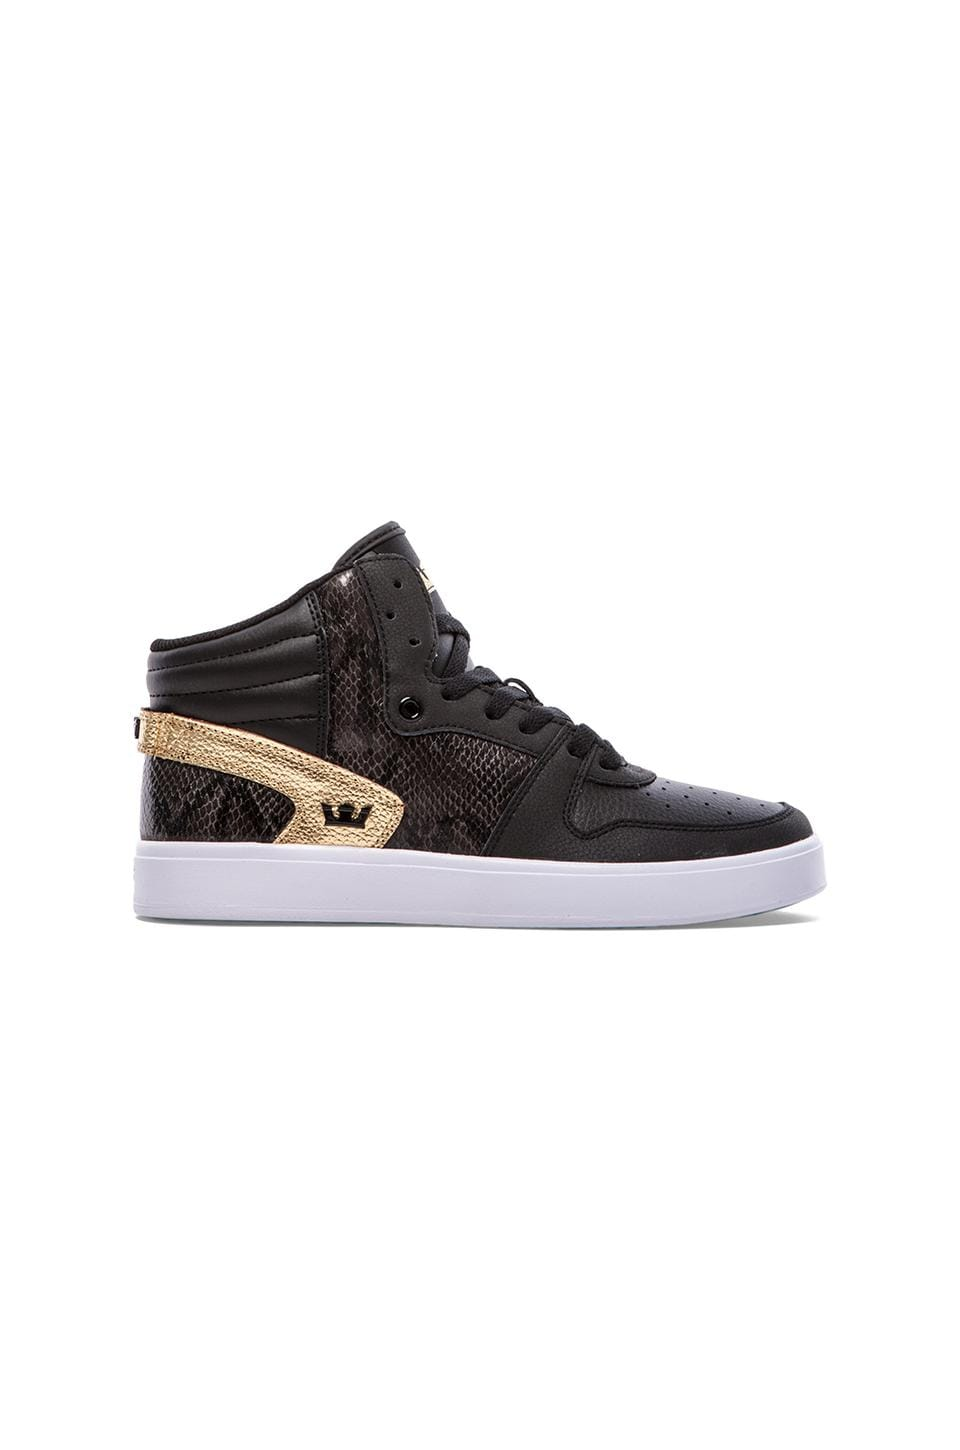 Supra Sphinx in Black/Gold